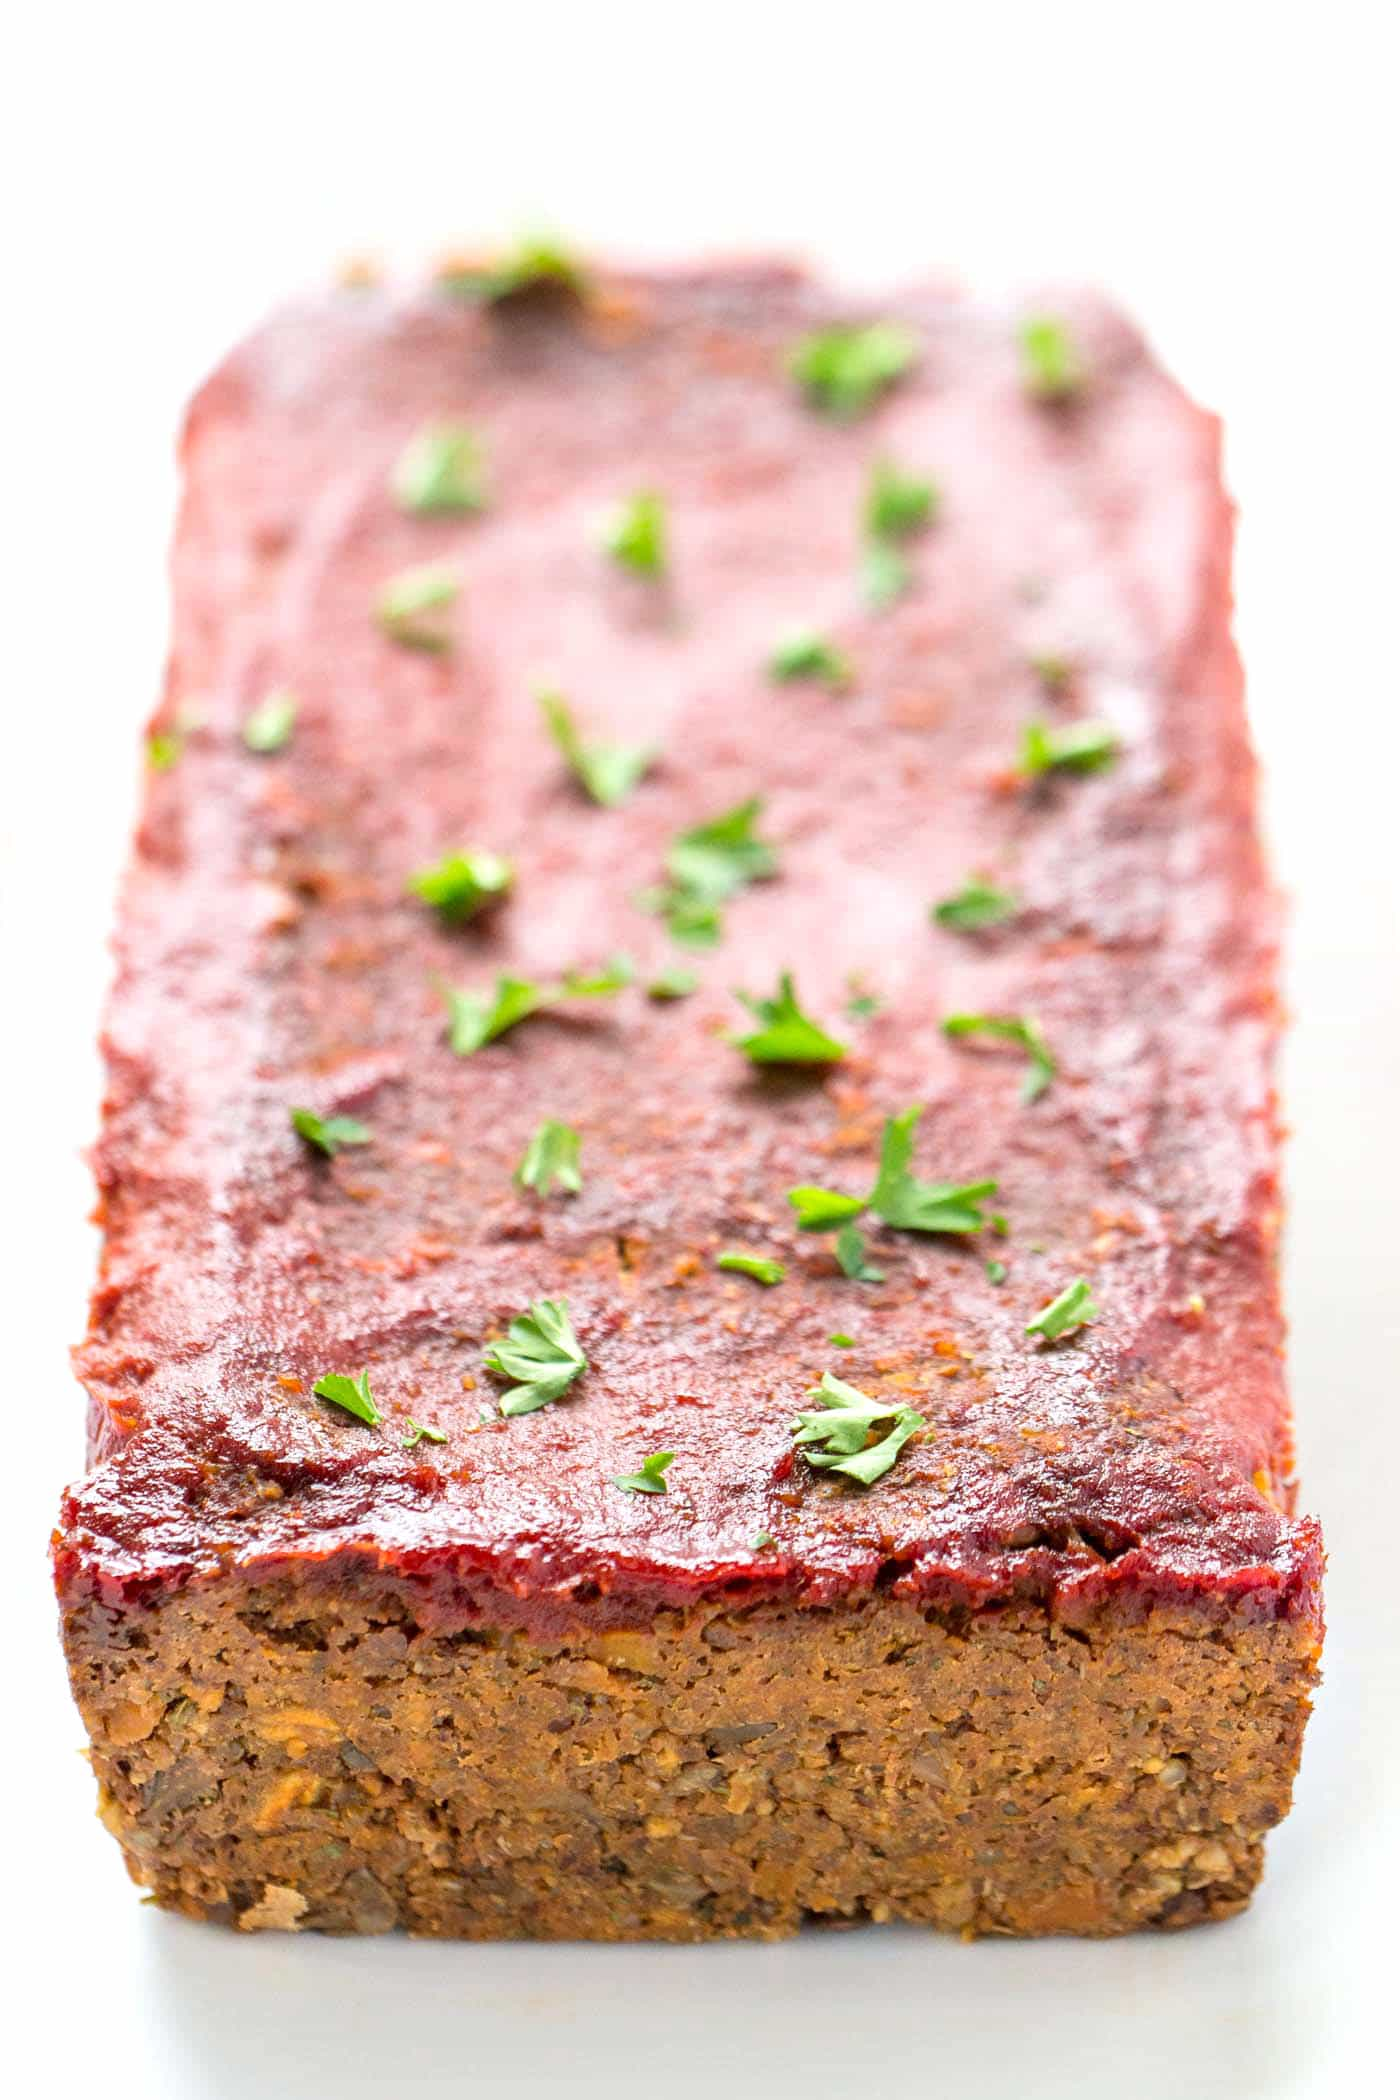 QUINOA MEATLOAF -- made with lentils, mushrooms and walnuts for a surprising meat-like texture! [vegan + gluten-free]